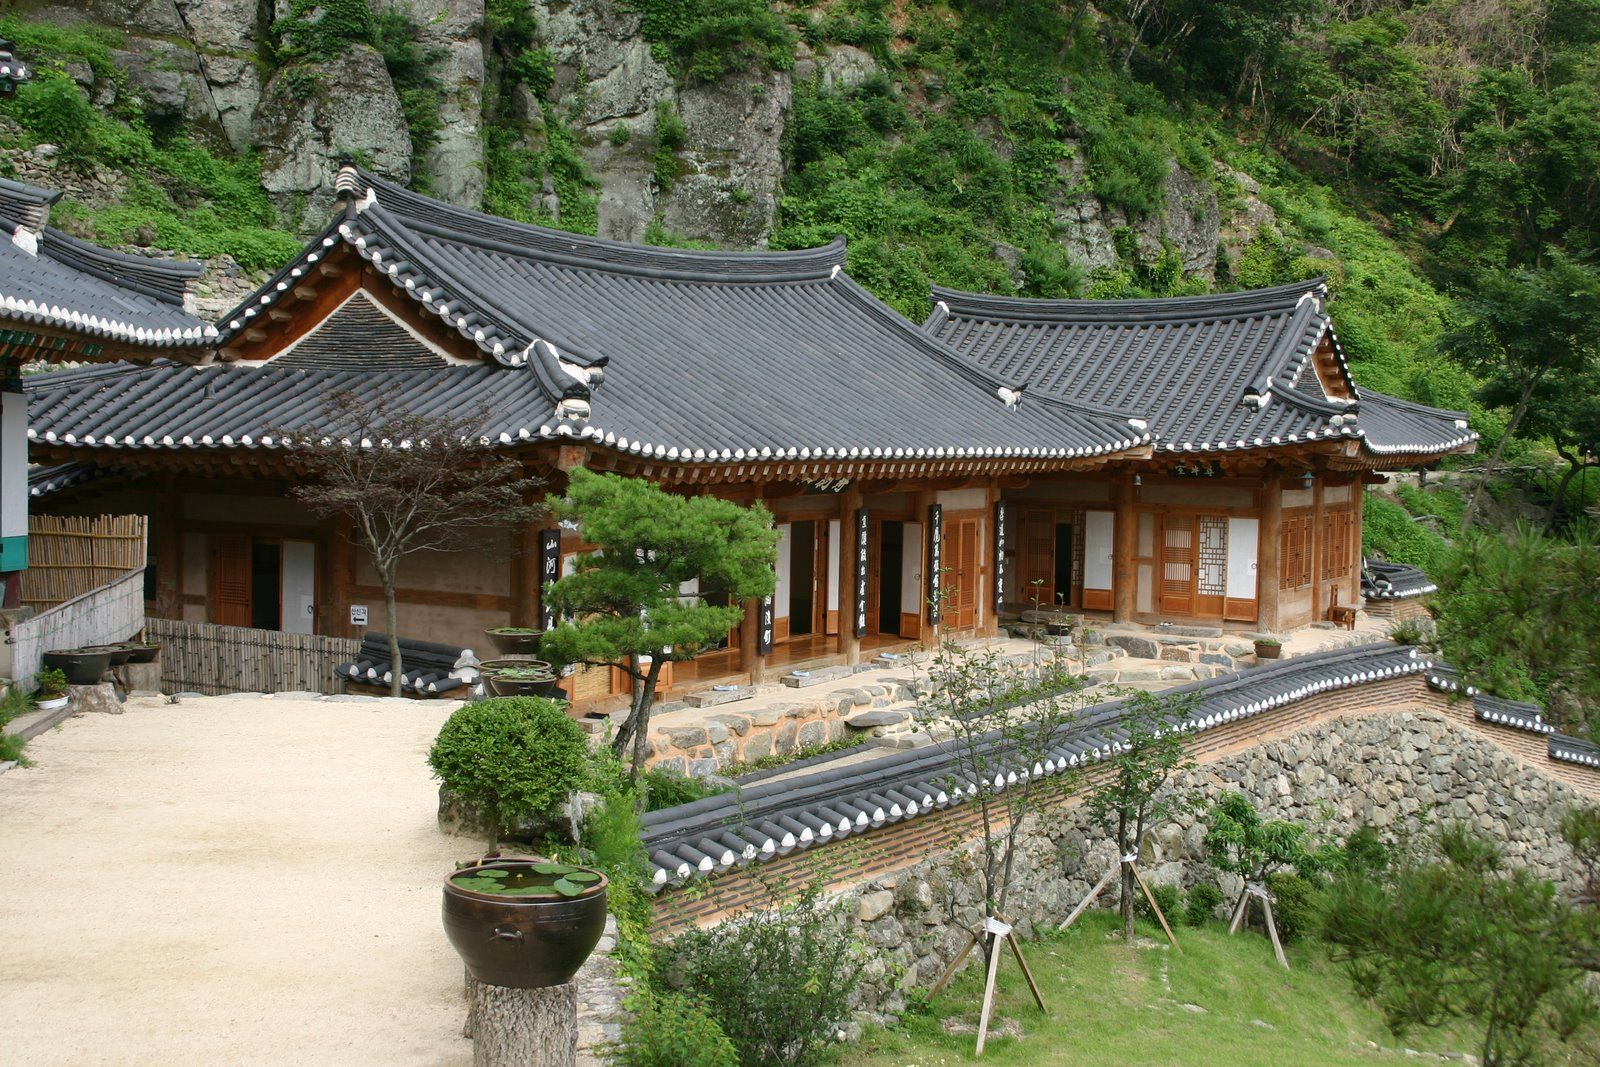 ^ 1000+ images about Korean house on Pinterest  Korea, Seoul and House